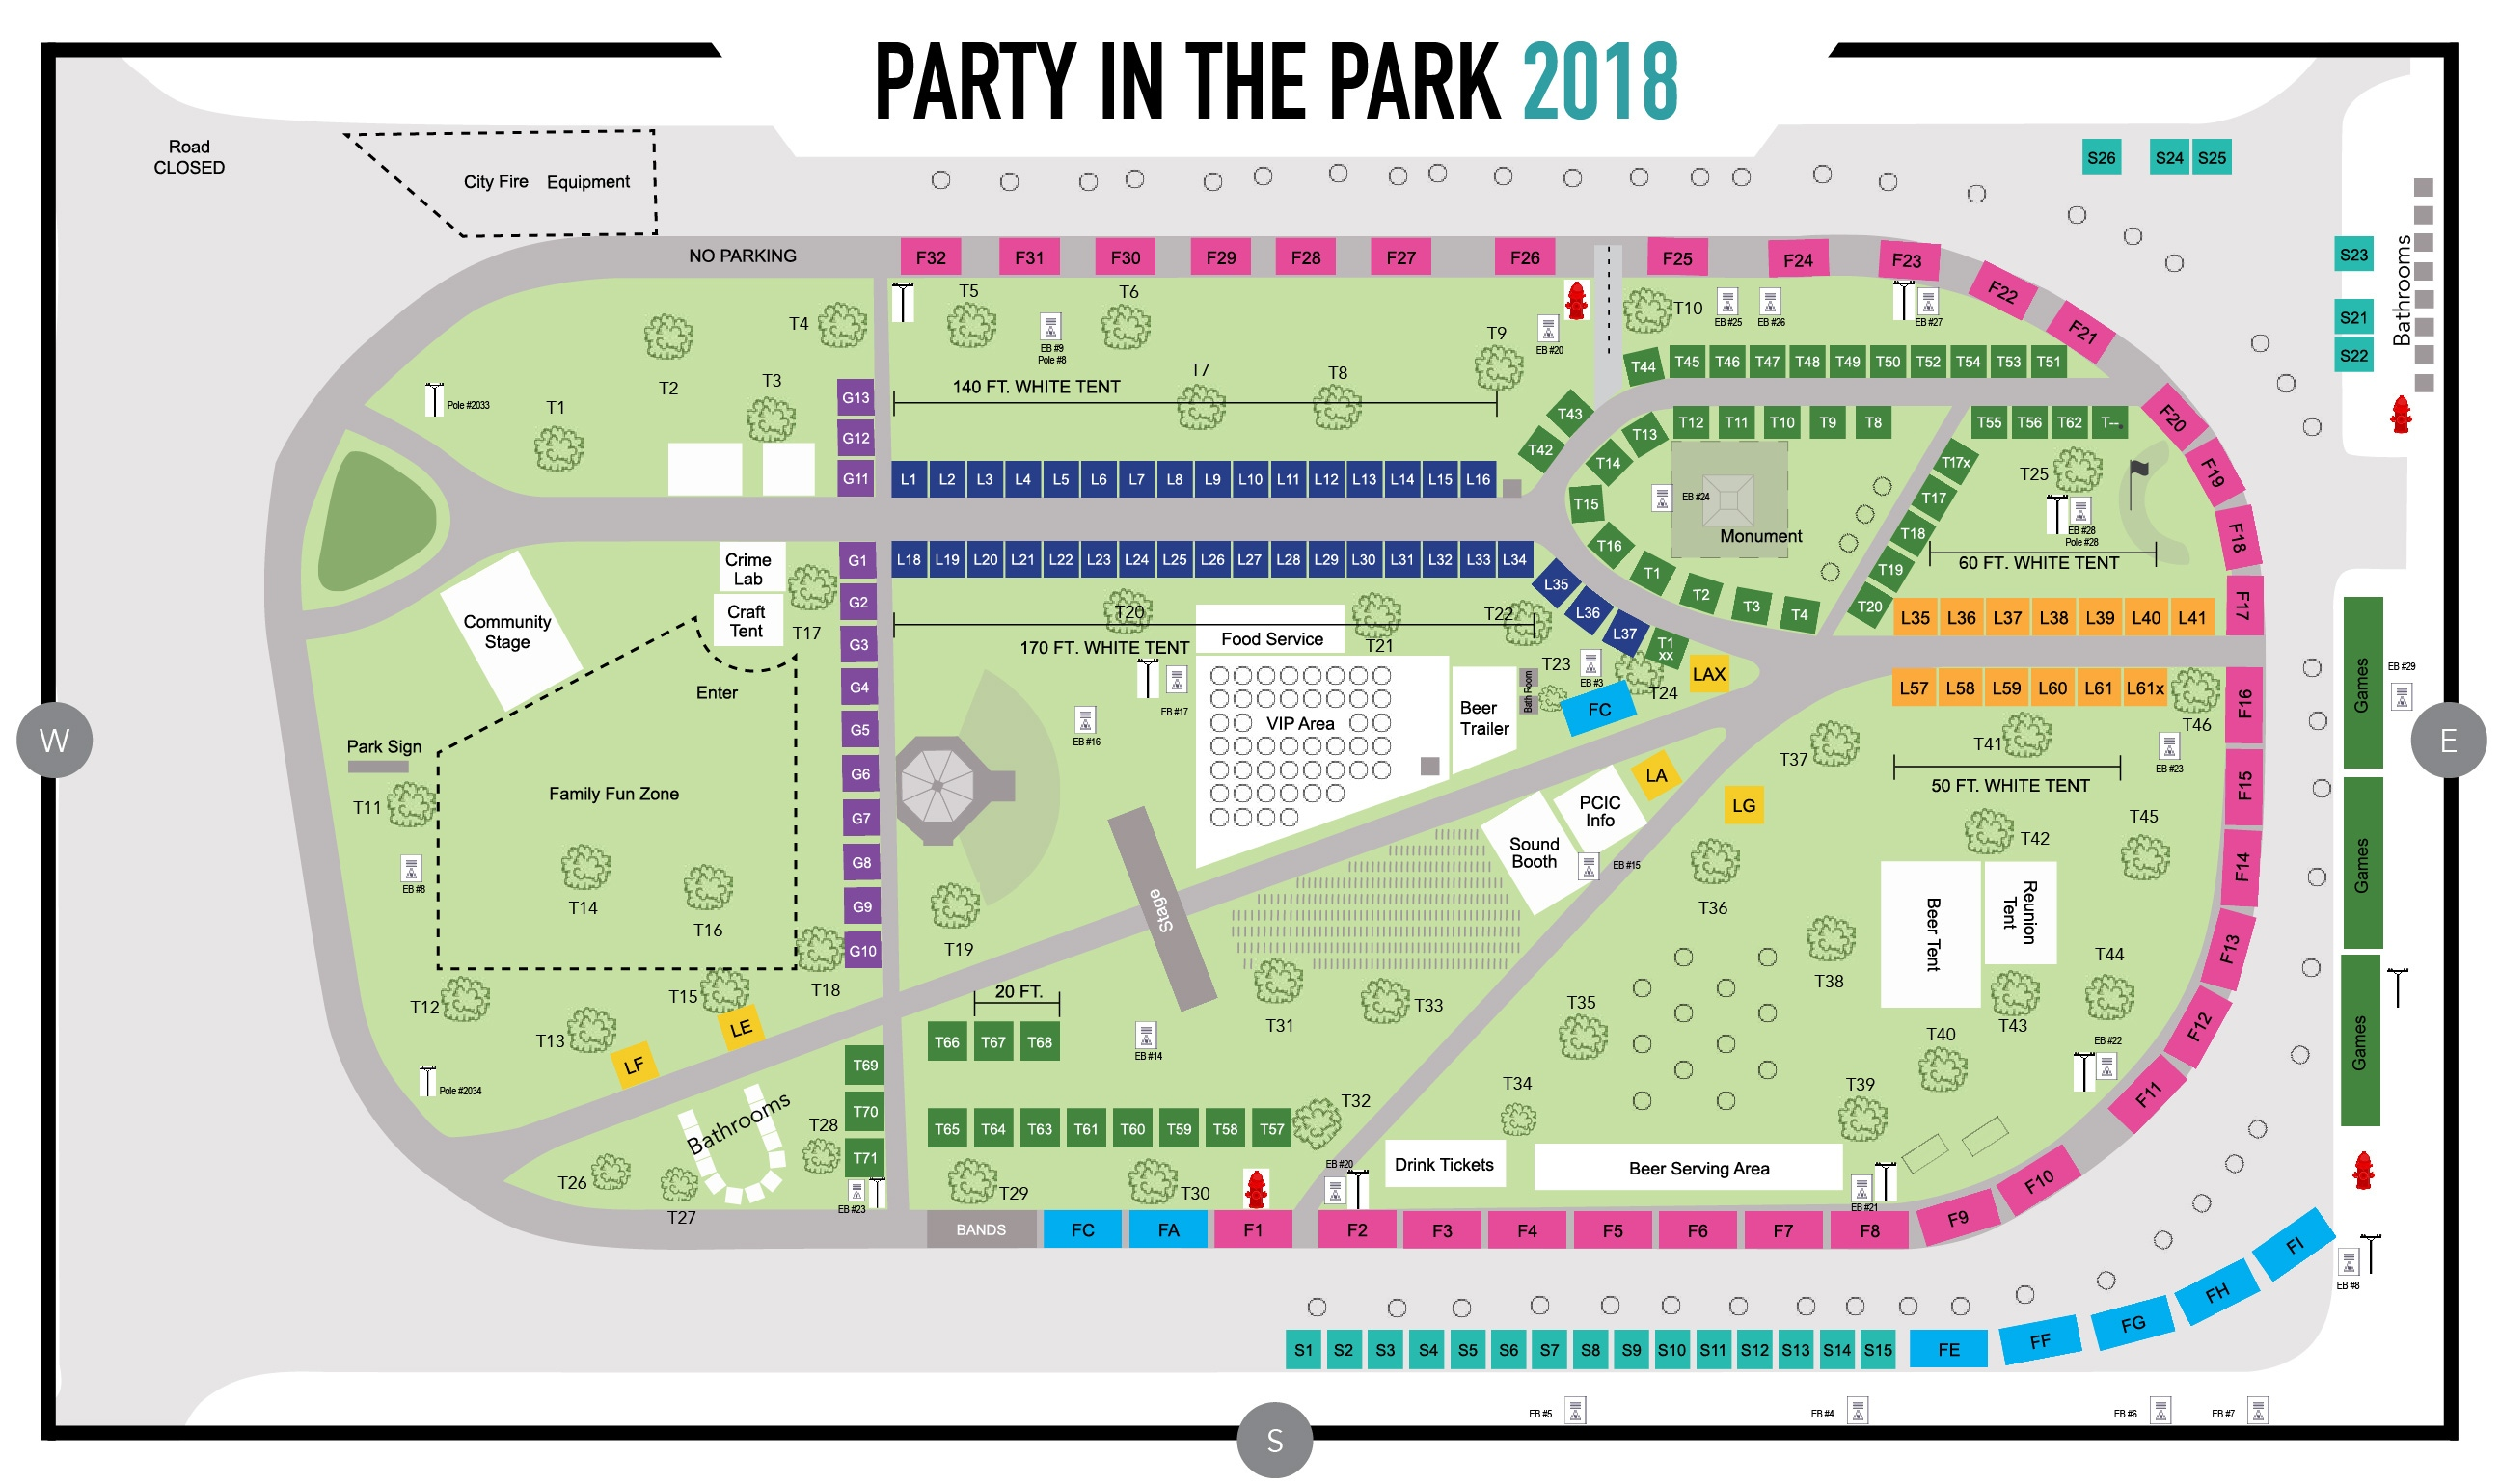 2018 Party In The Park Veterans Park Map